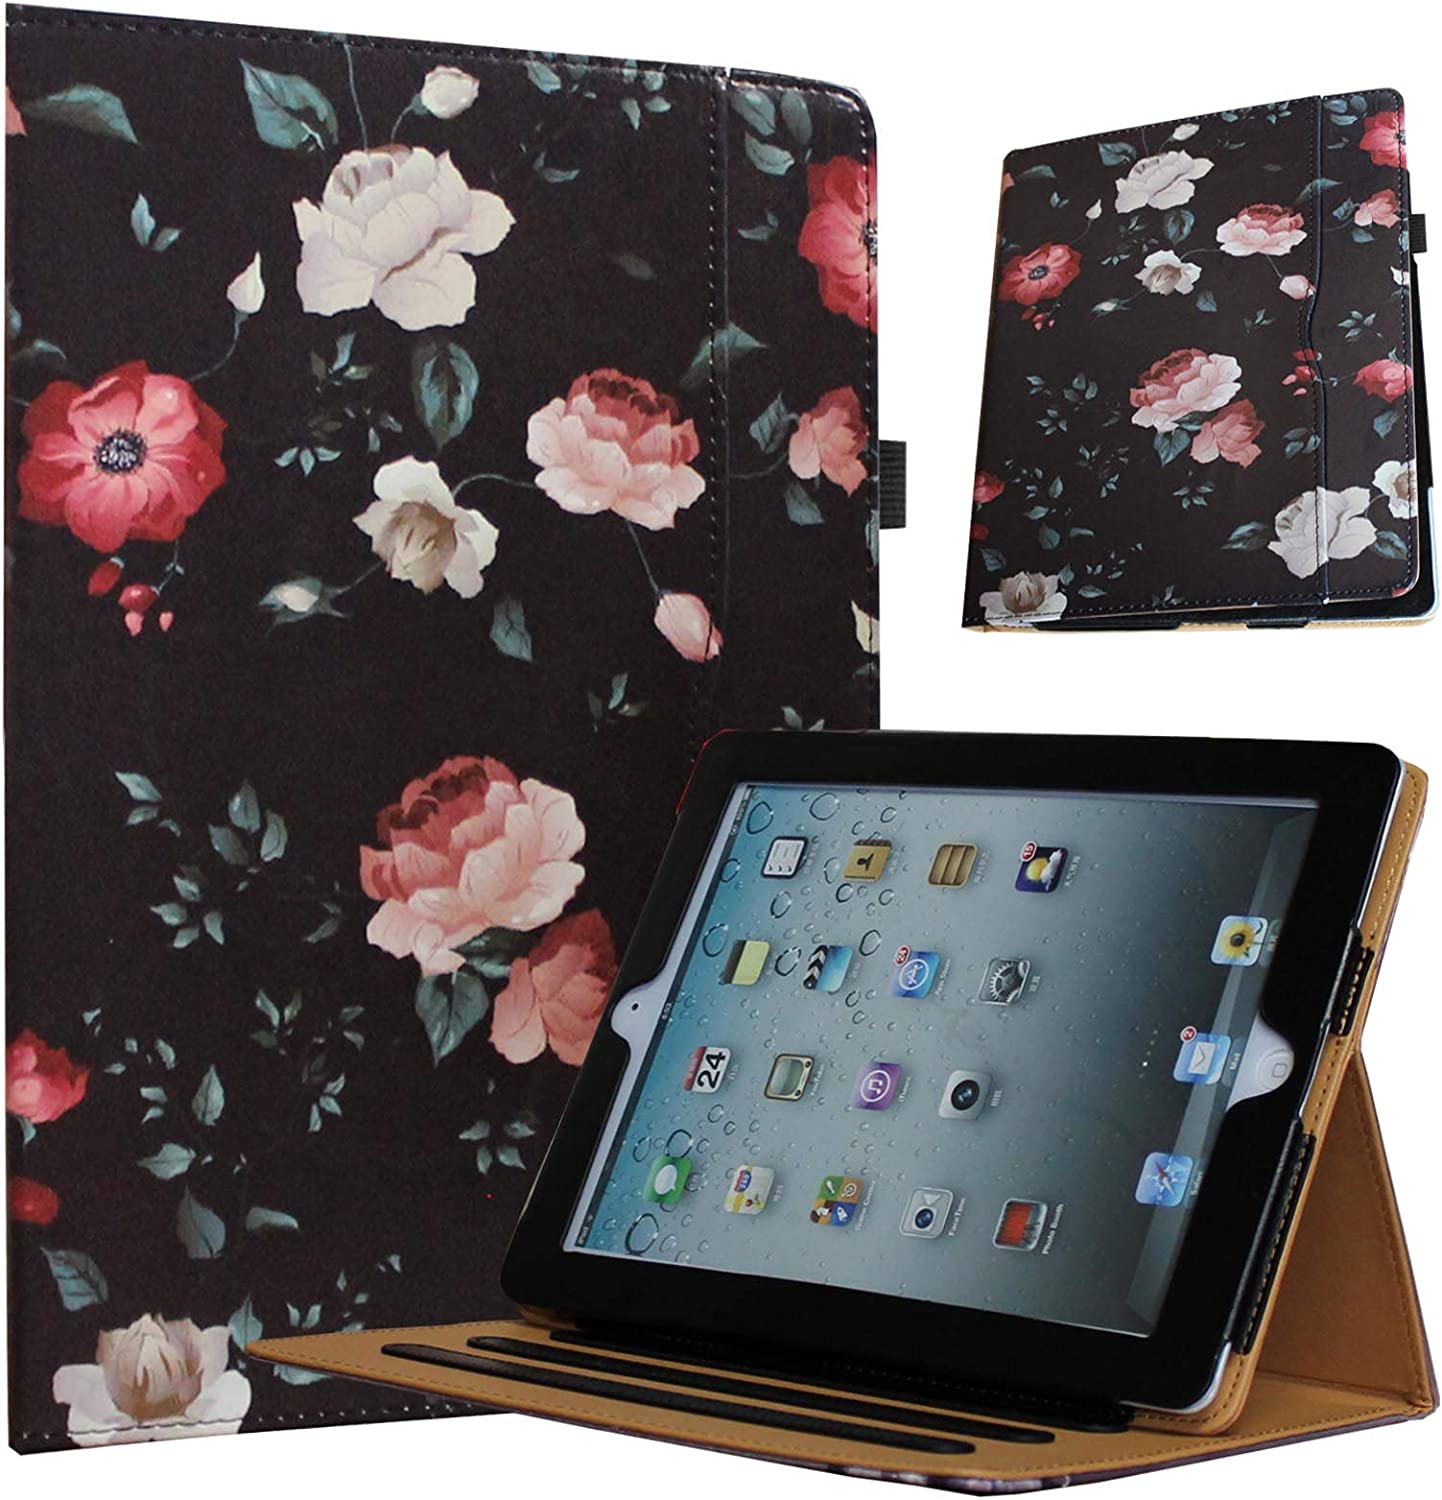 JYtrend Case for 2019 iPad Air 3 (10.5-inch)/2017 iPad pro 10.5, Multi-Angle Viewing Stand Folio Smart Cover with Pocket Auto Wake Up/Sleep for A2152 A2153 A2123 A2154 A1701 A1709